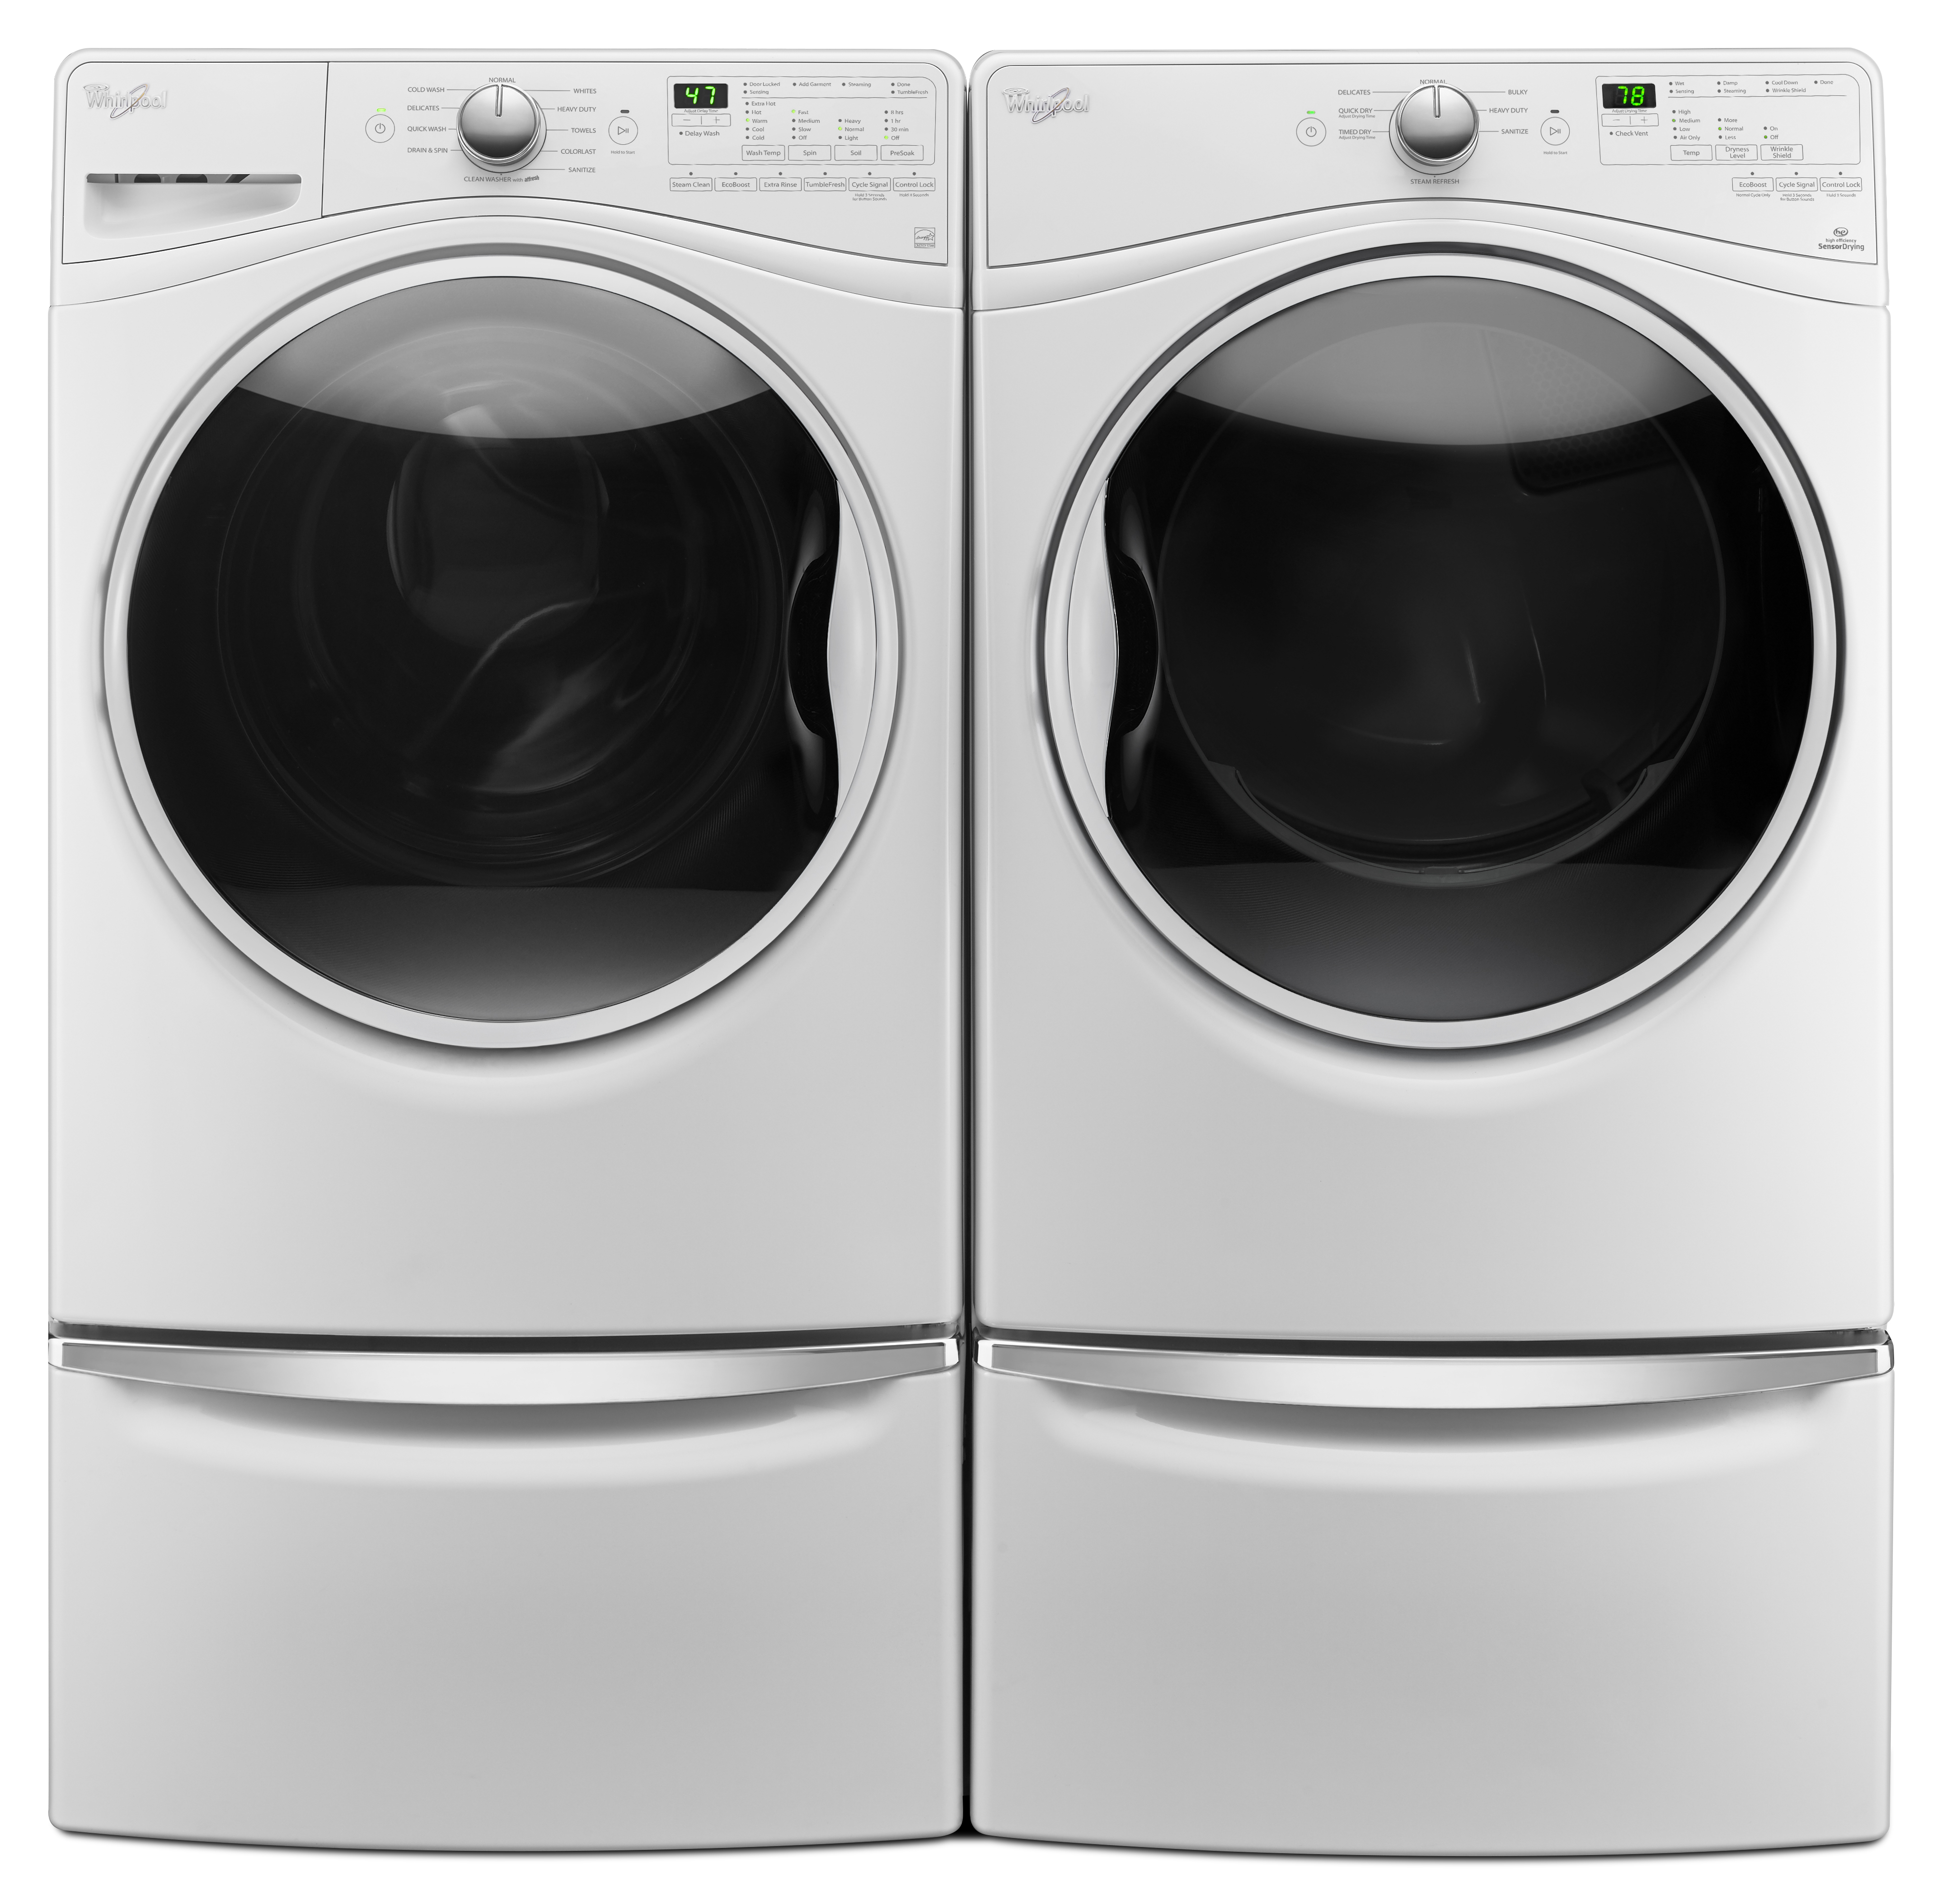 4.5 cu. ft. Front-Load Washer & 7.4 cu. ft. Gas or Electric Dryer with Optional Pedestal